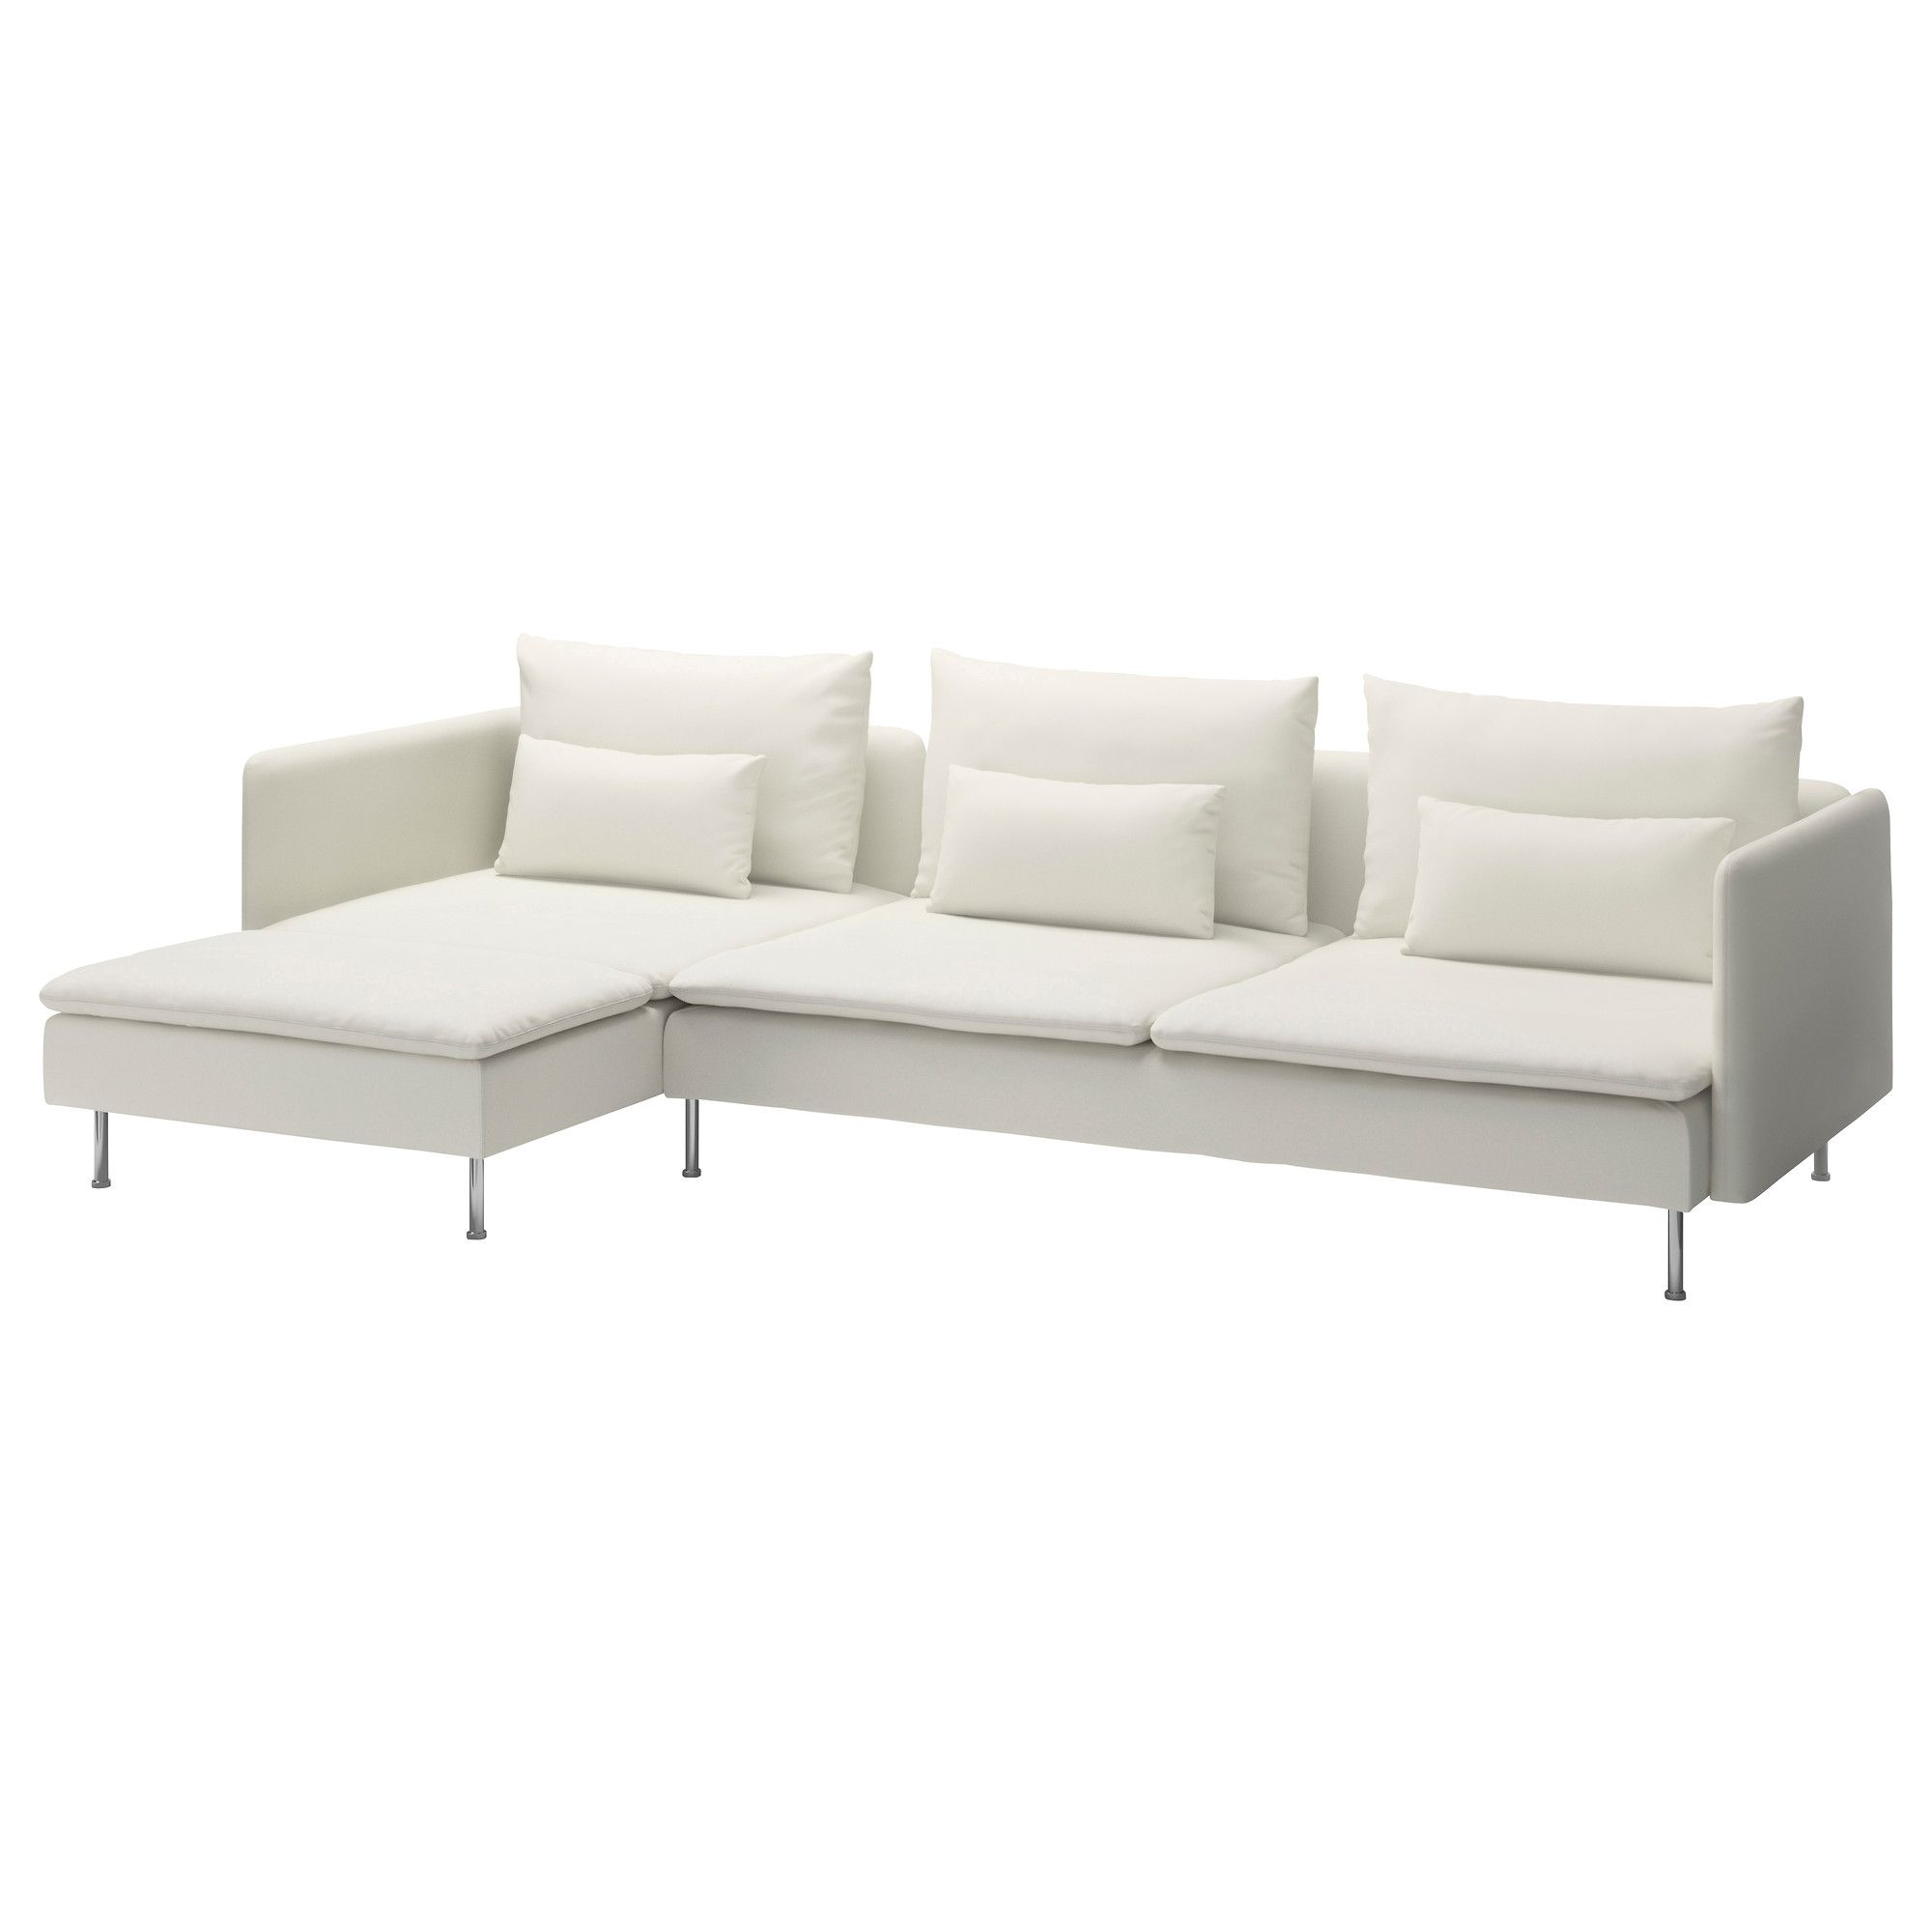 Divano Velluto Blu Ikea ireland: shop for furniture & home accessories (with images